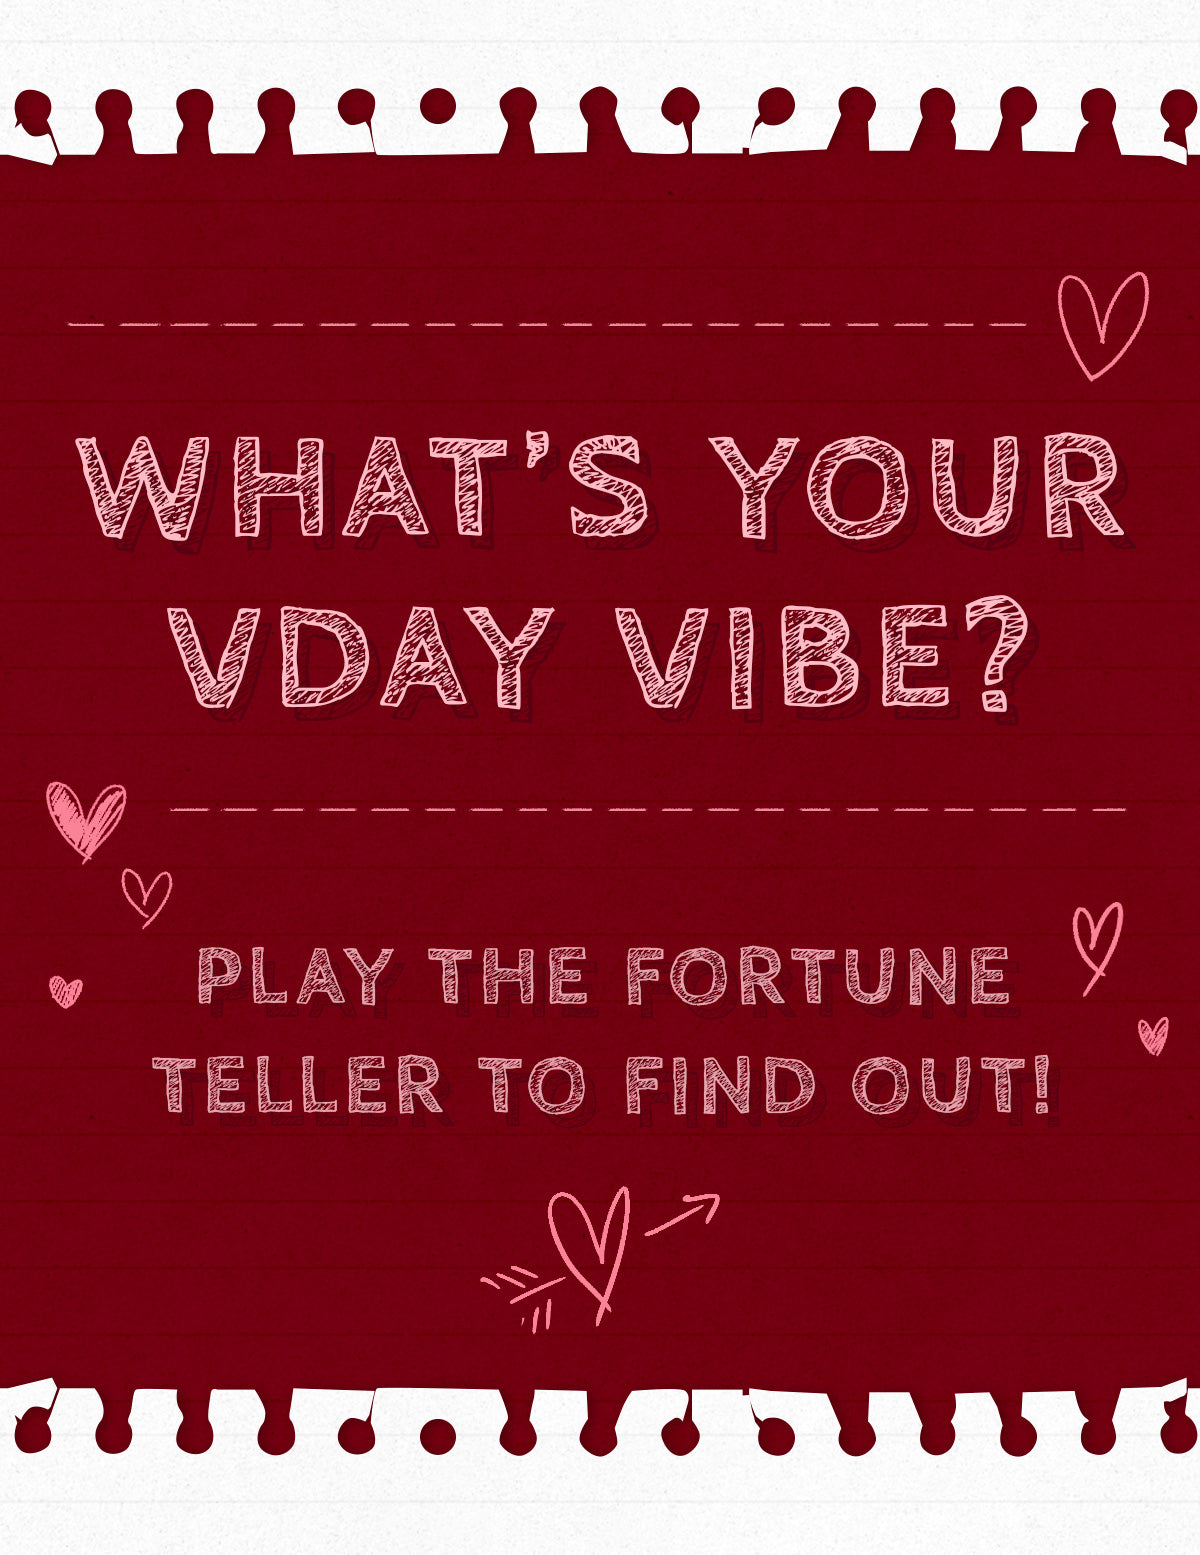 Colourpop VDAY Fortune Teller